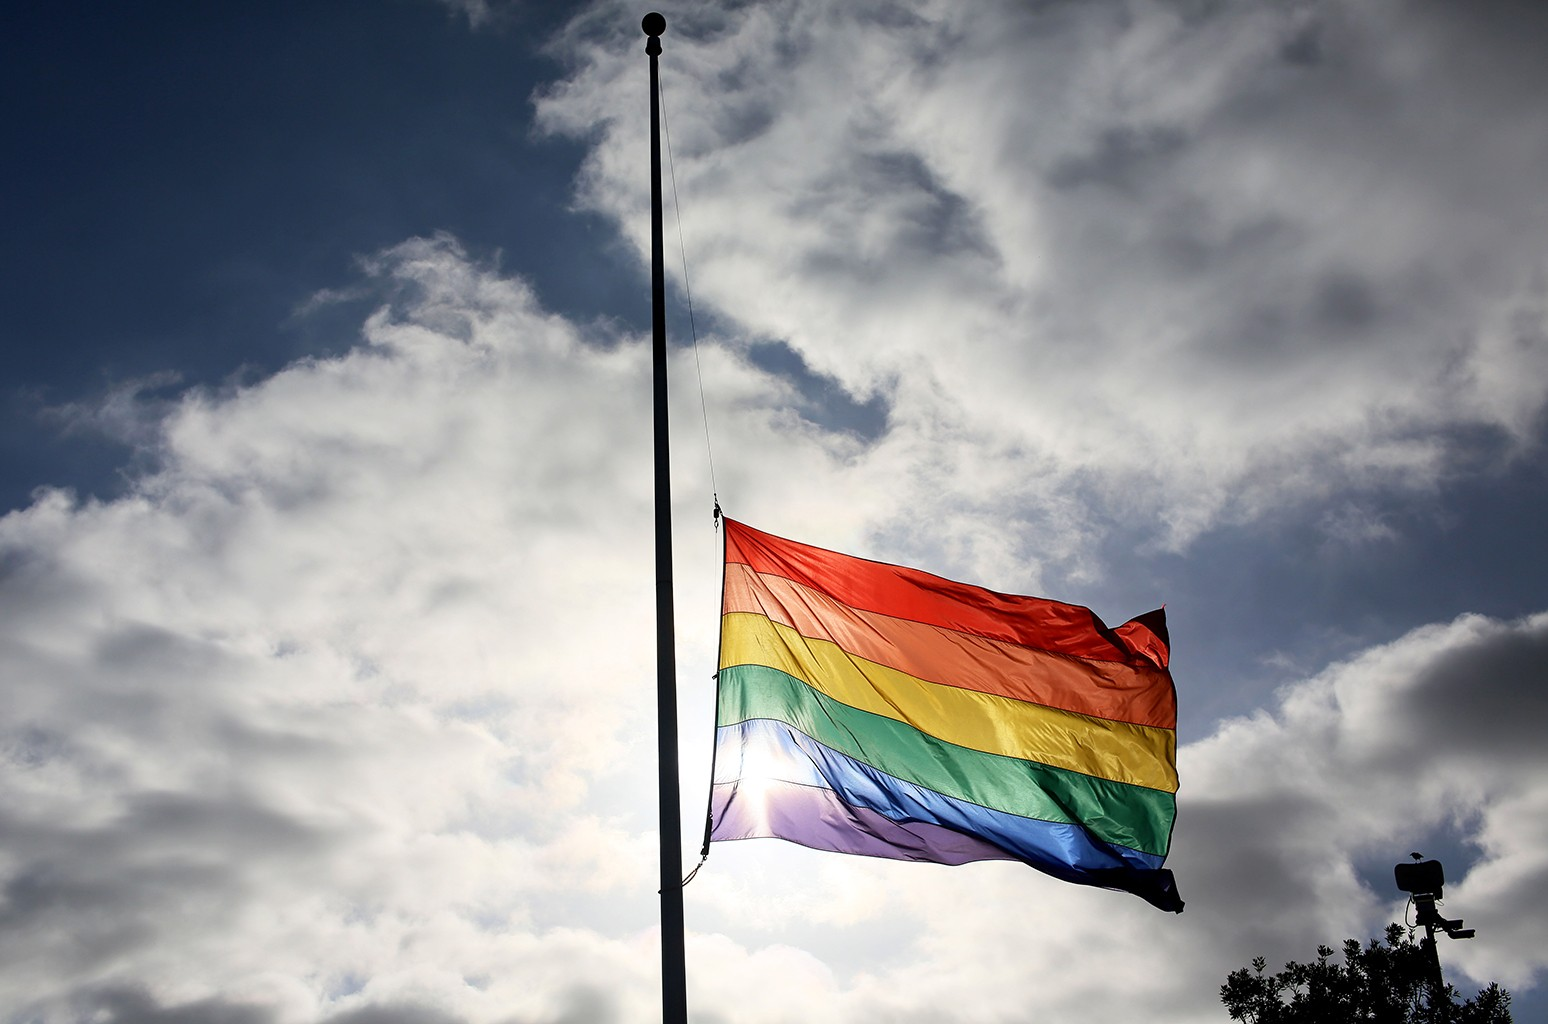 A pride flag in 2016